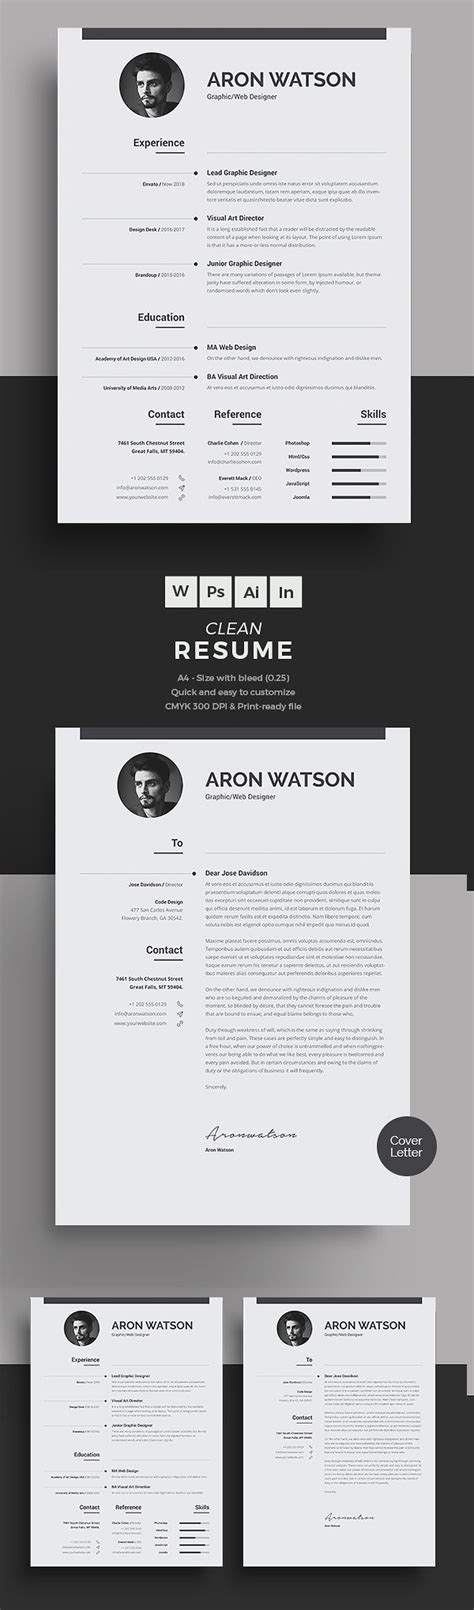 graphic design resume font magnificent graphic design resume fonts images exle